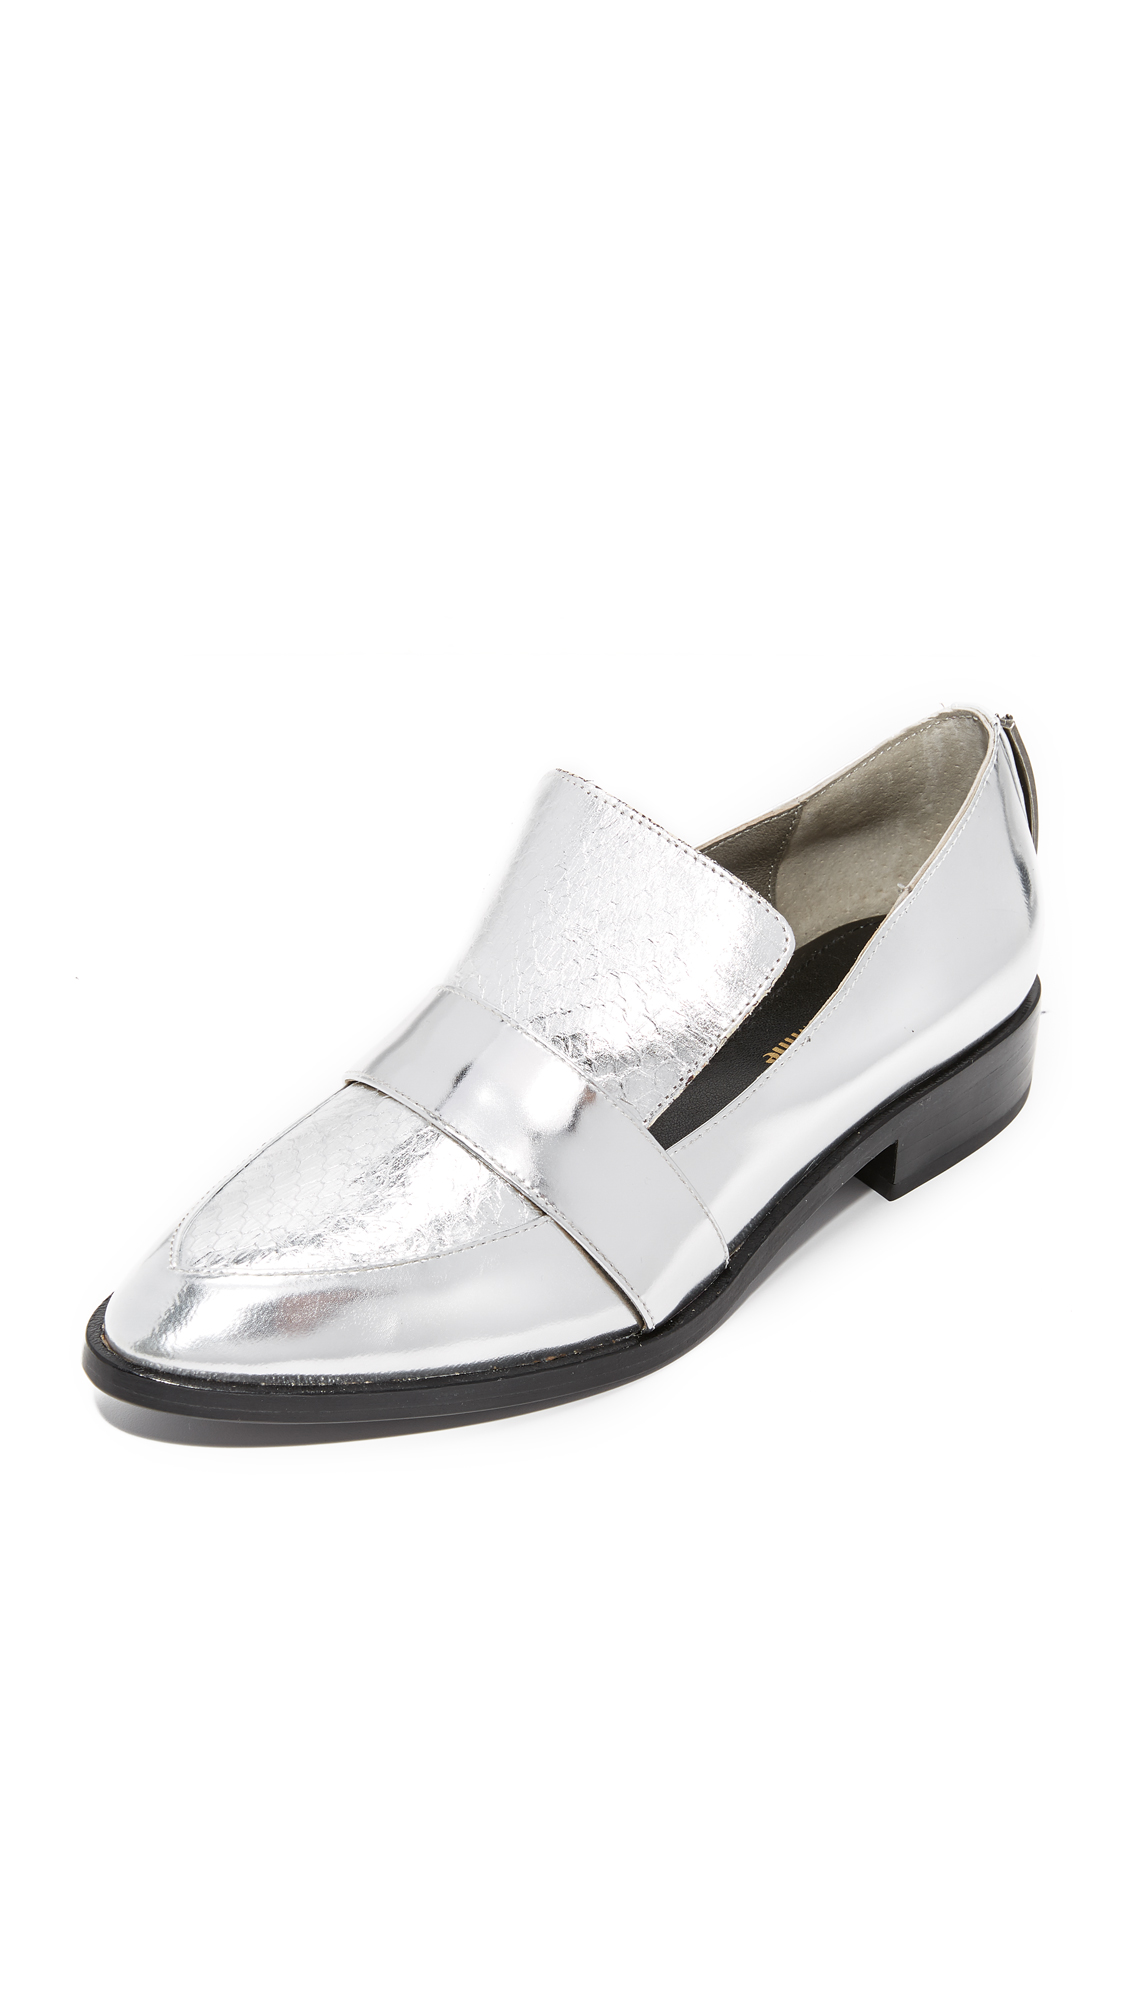 Mara & Mine Camilla Metallic Loafers - Silver